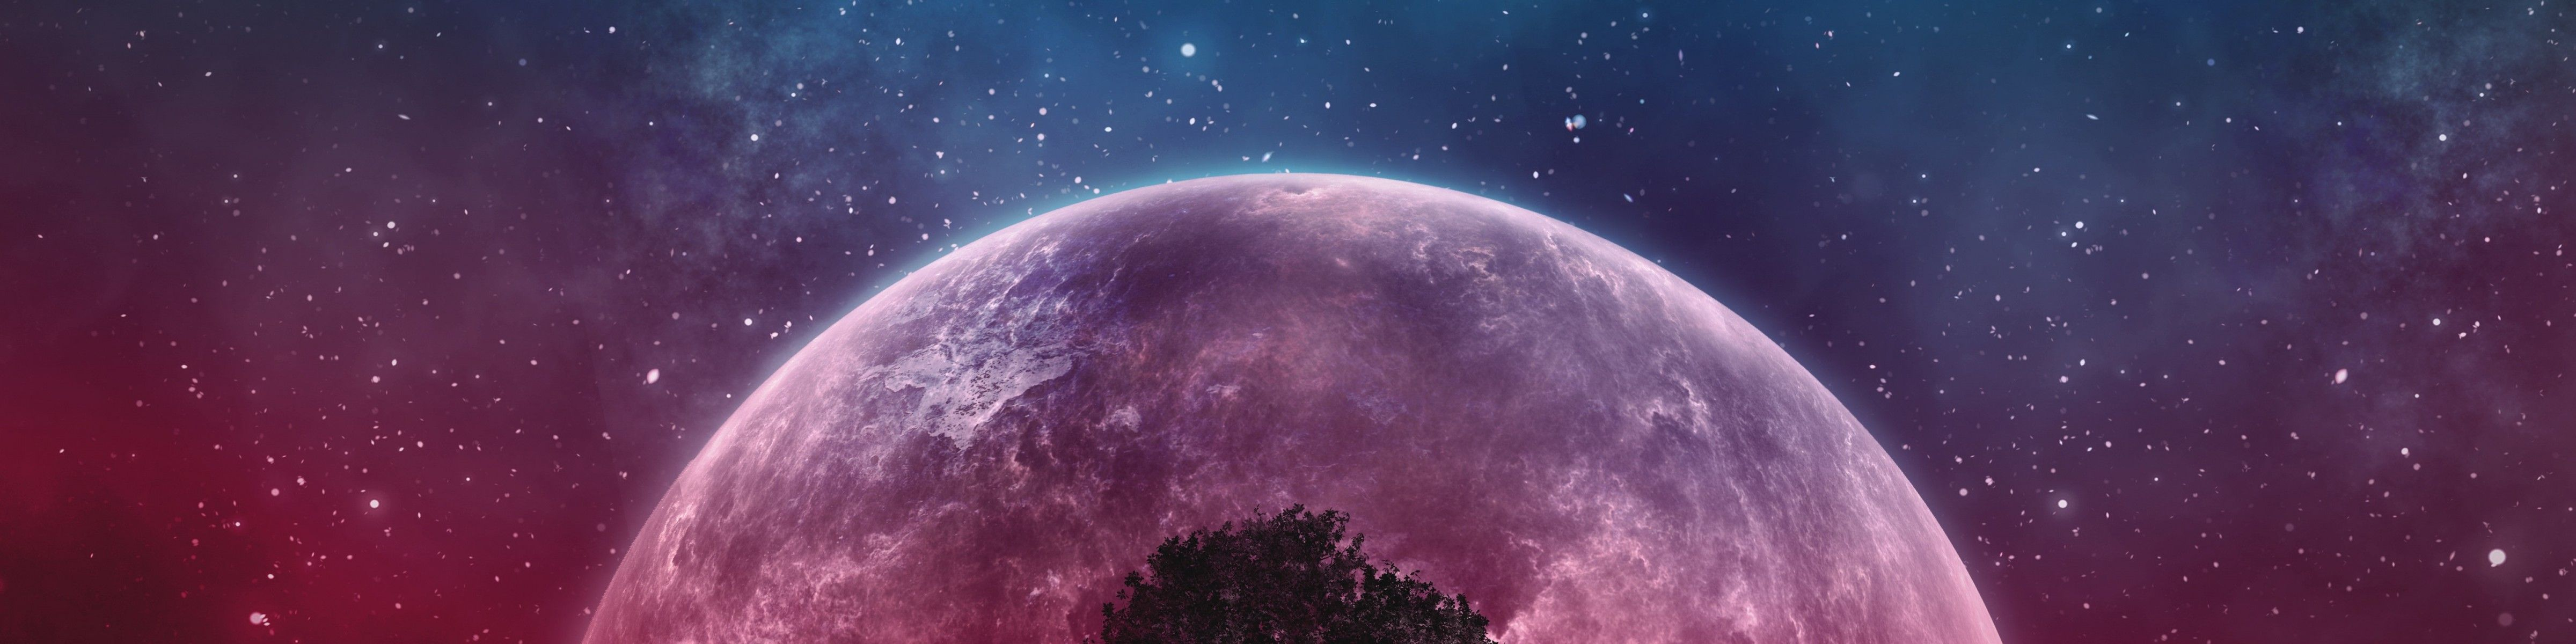 4800x1200 Wallpaper Tree, Planet, Stars, Galaxy, Art 4800x1200 - Wallpapers Haze